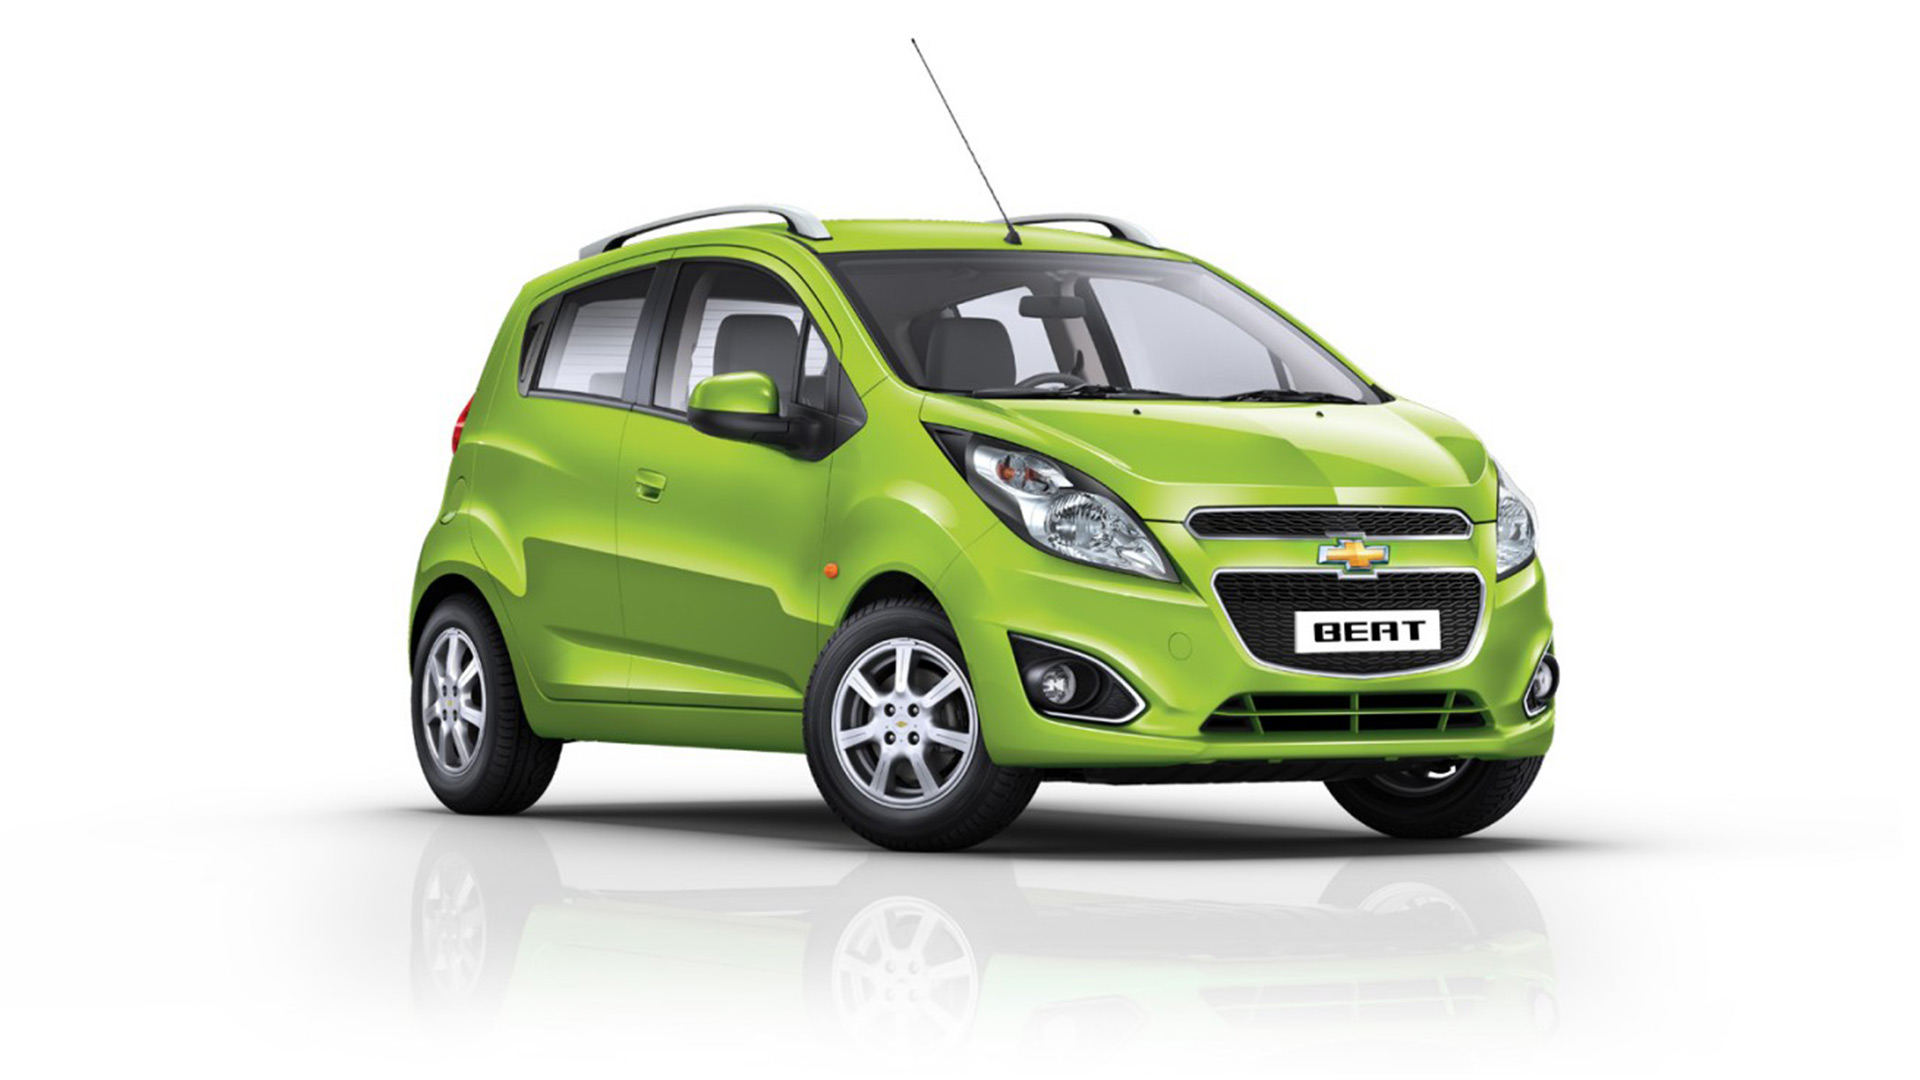 Chevrolet Beat 2016 LS Diesel - Price, Mileage, Reviews, Specification,  Gallery - Overdrive